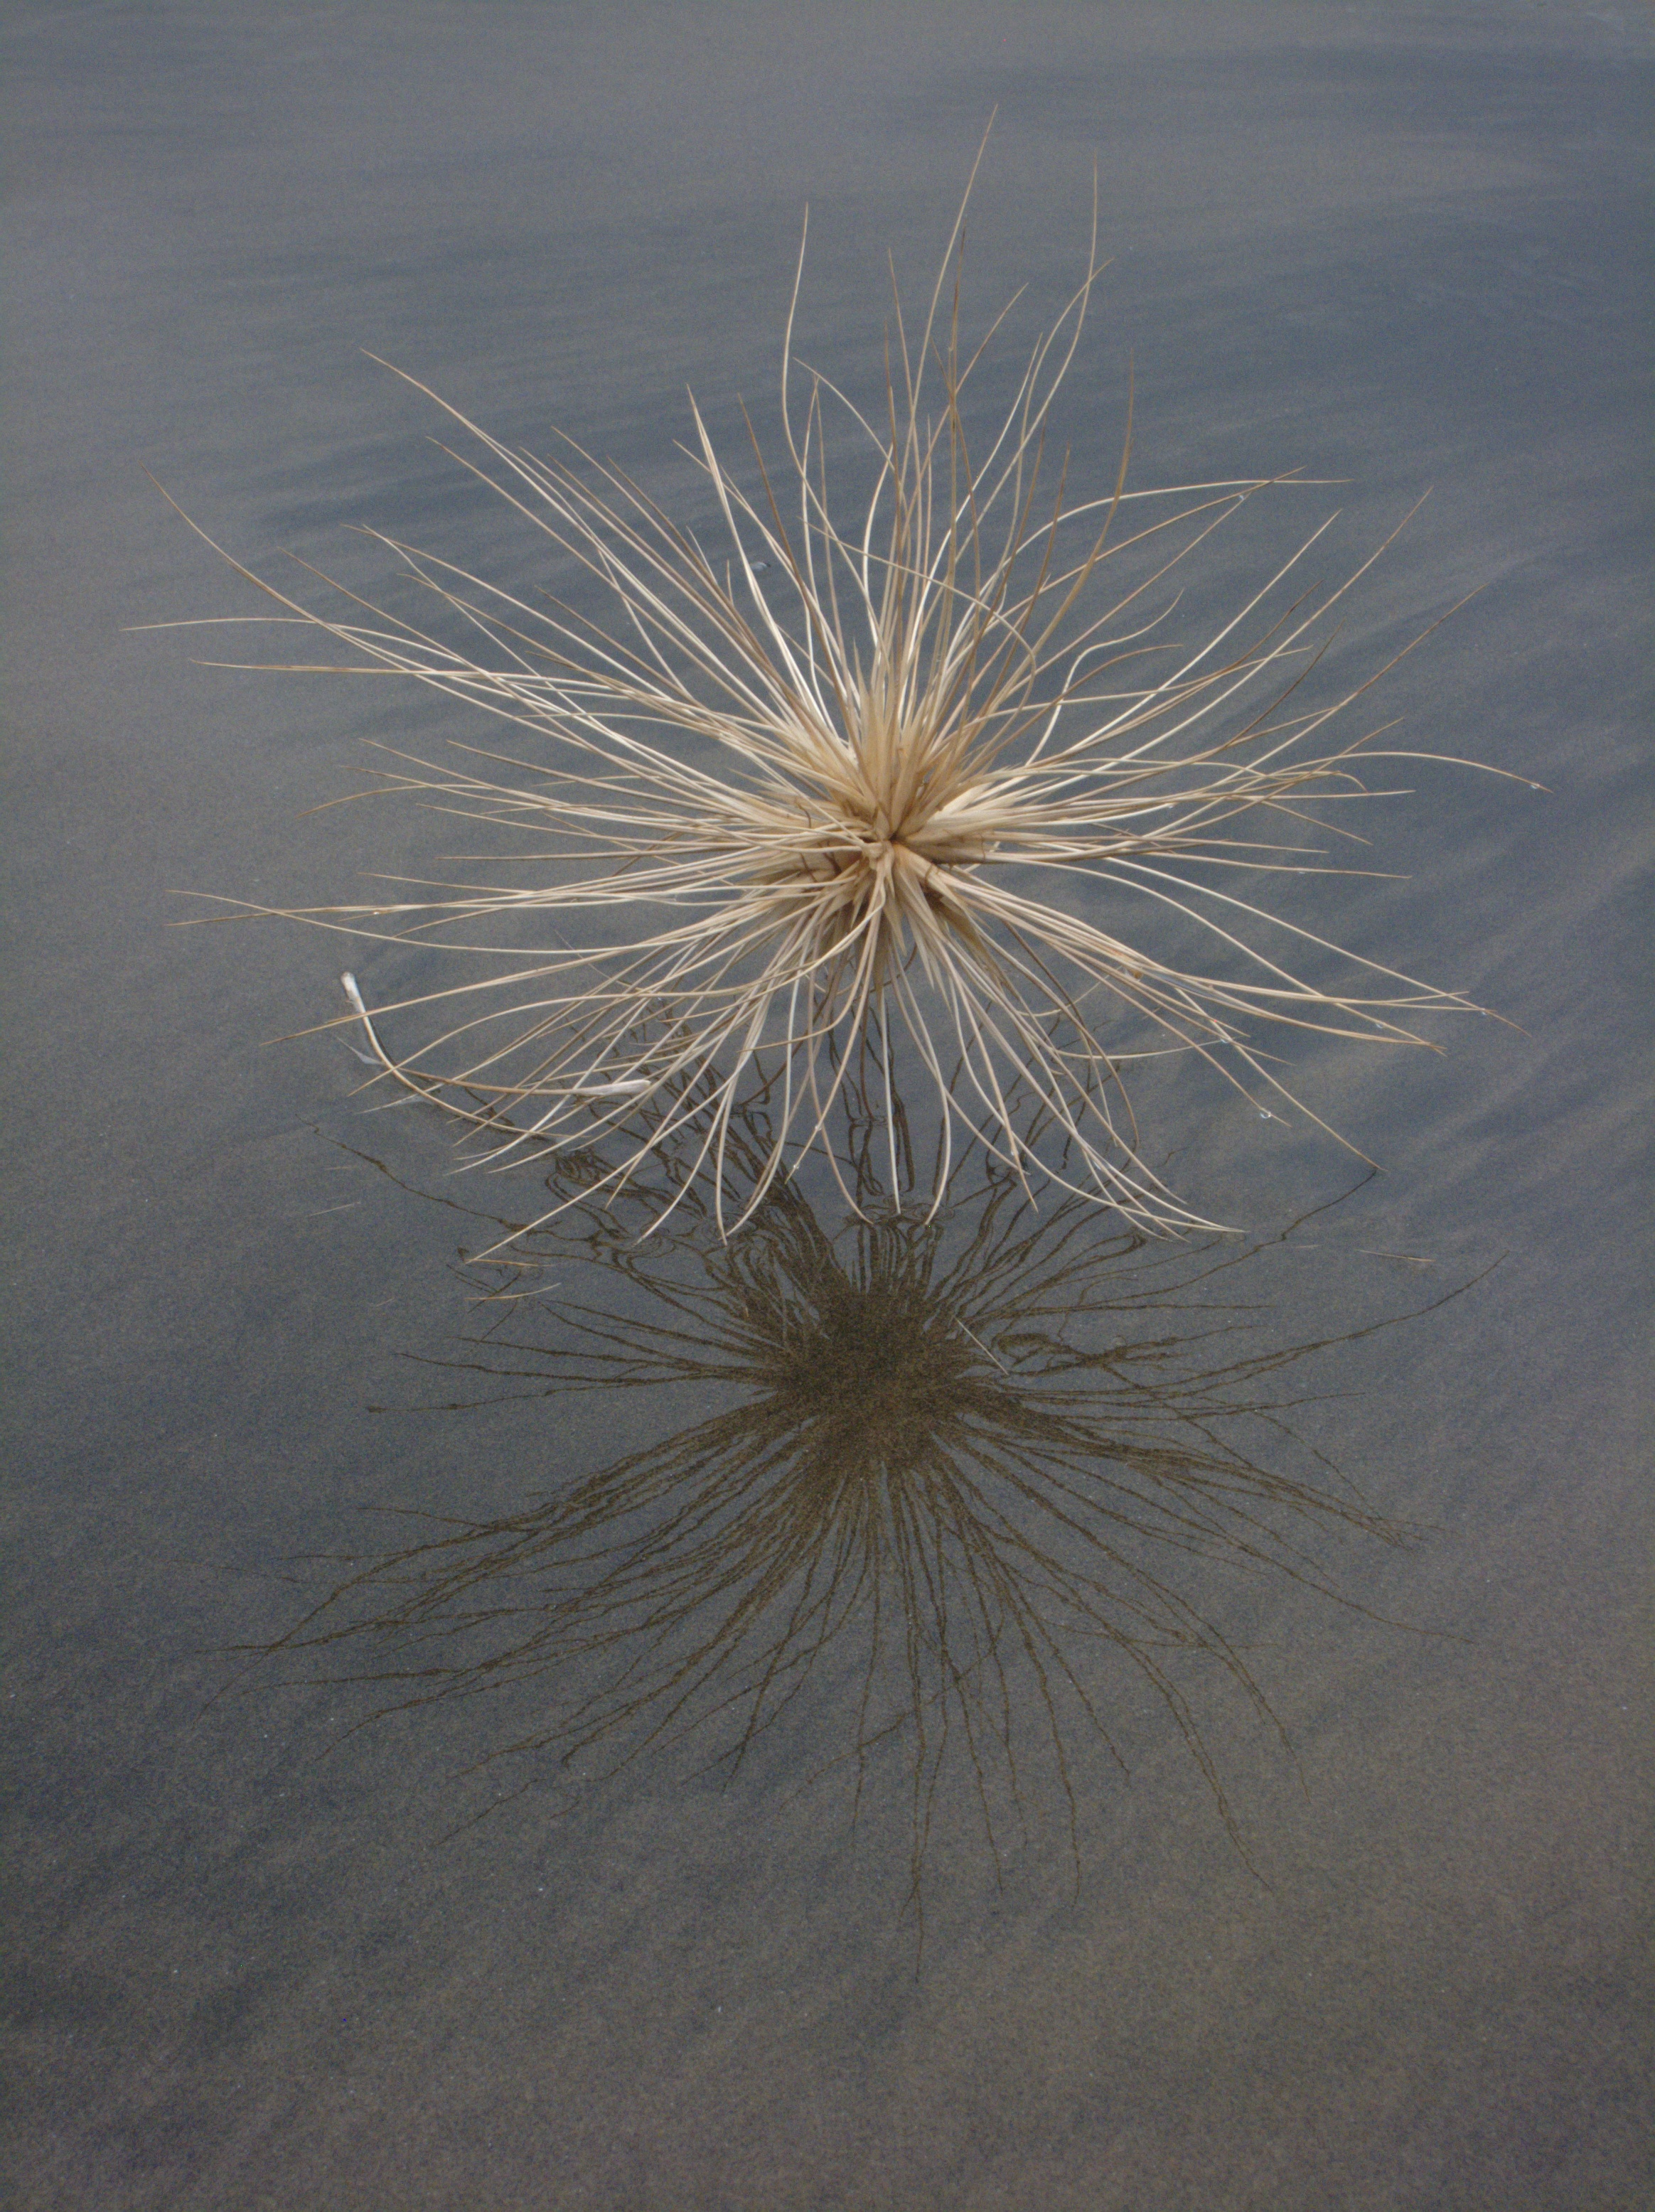 http://upload.wikimedia.org/wikipedia/commons/6/6a/Spinifex_sericeus_seed_head.jpg